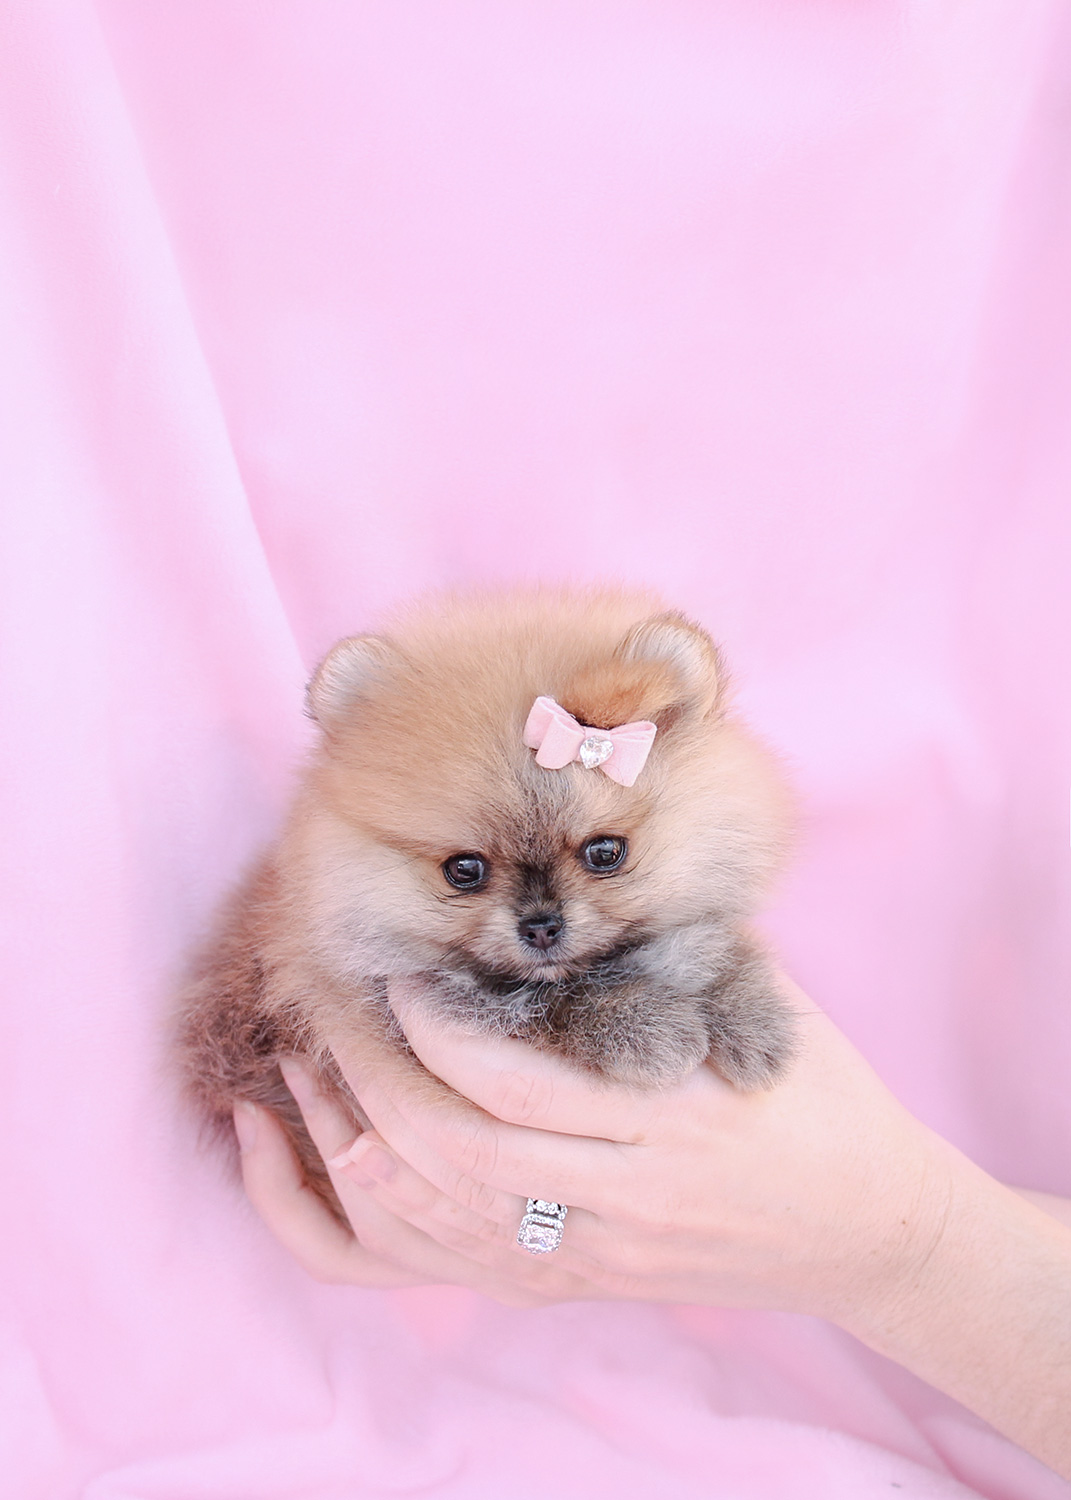 Teacup Pomeranian Puppy And Pomeranian Puppies At Teacups Pomeranian 3251405 Hd Wallpaper Backgrounds Download